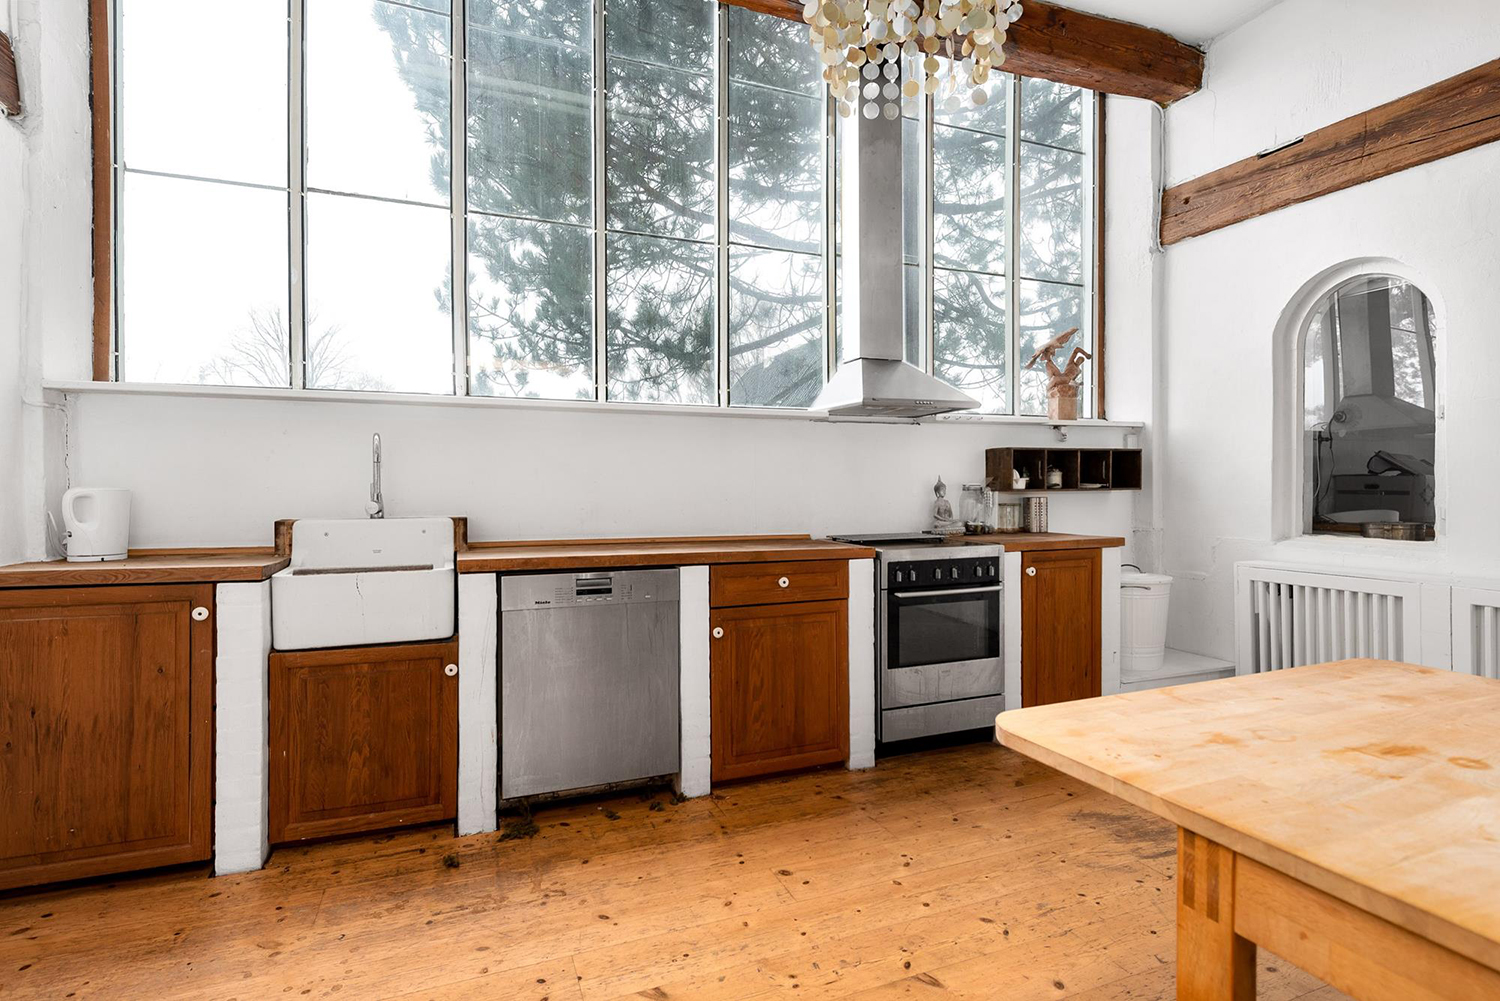 Kitchen appliances are new though cabinetry is again, upcycled and recycled from other projects.